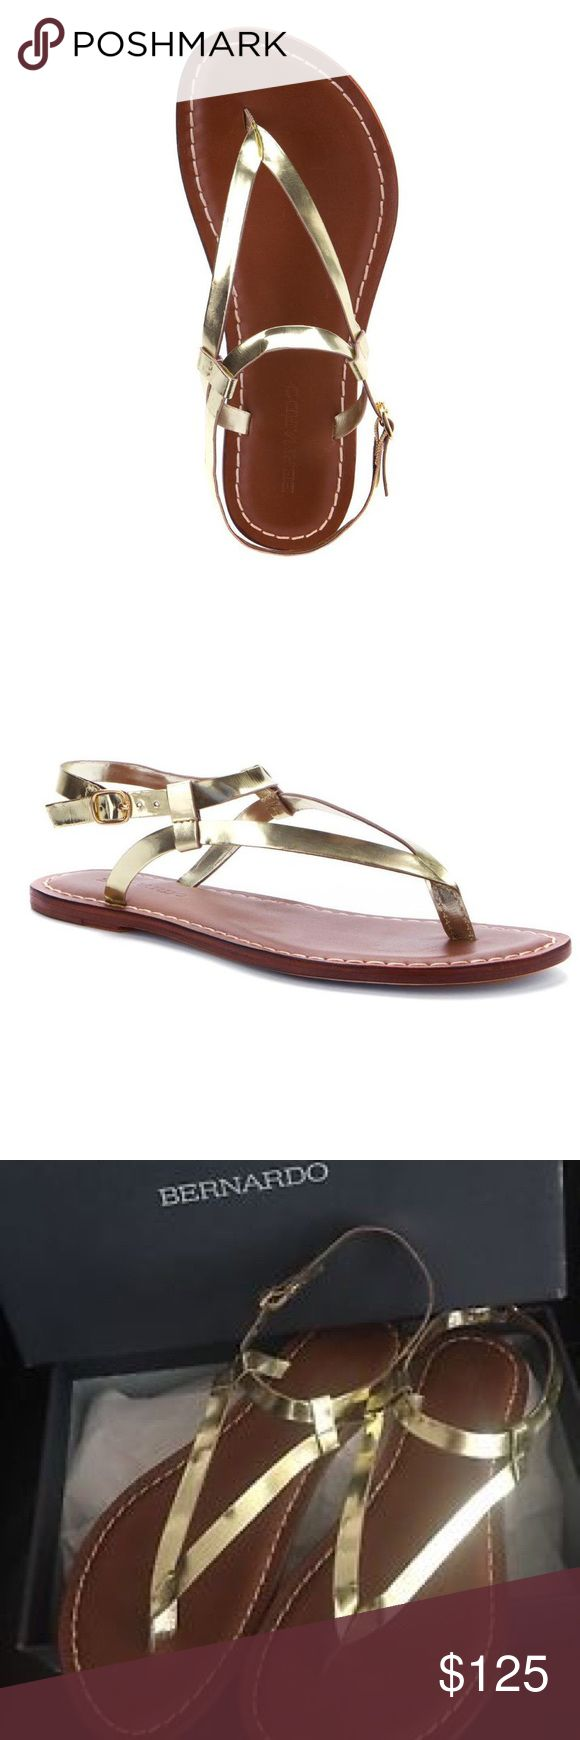 Bernardo Leather Sandals in Light Gold A lightly padded and leather-lined footbed cushions and supports atop a leather traction sole built for walking comfort. Bare your soul as well as your feet in the minimally designed Bernardo  flat sandal. With leather upper, ankle strap, buckle ankle, stitch details details, the Bernardo Sandals in Light Gold Specchio will keep you stylish and comfortable throughout your day. Bernardo Shoes Sandals